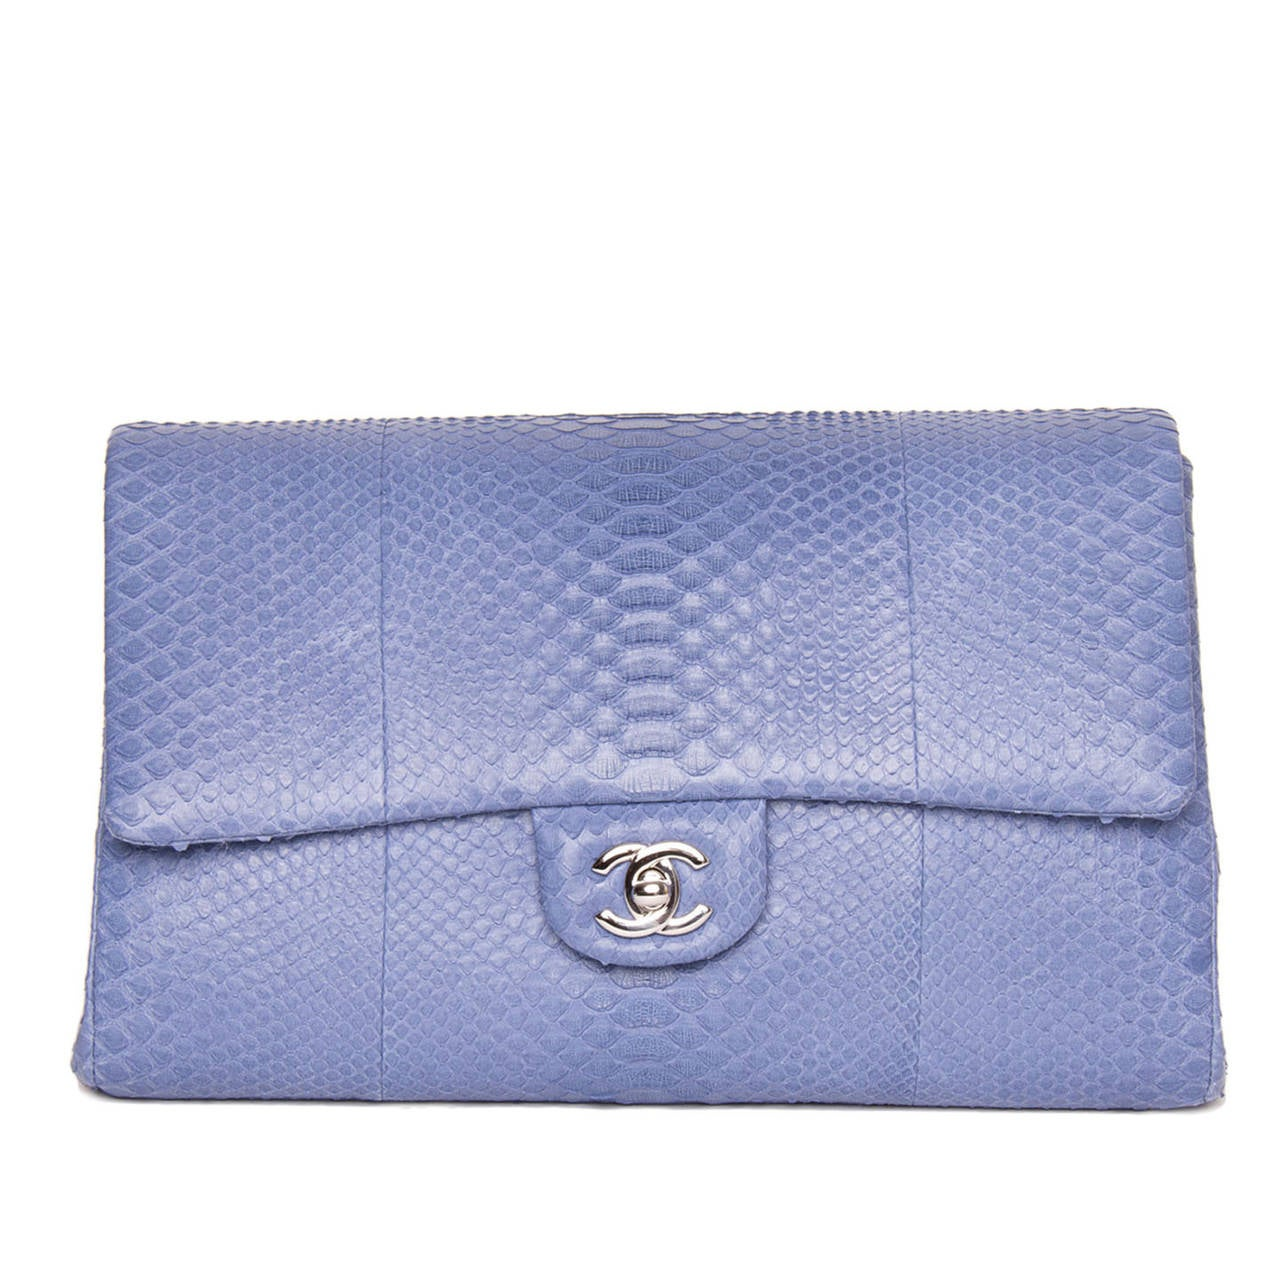 Women's Chanel Periwinkle Python Small Clutch Bag With Strap For Sale